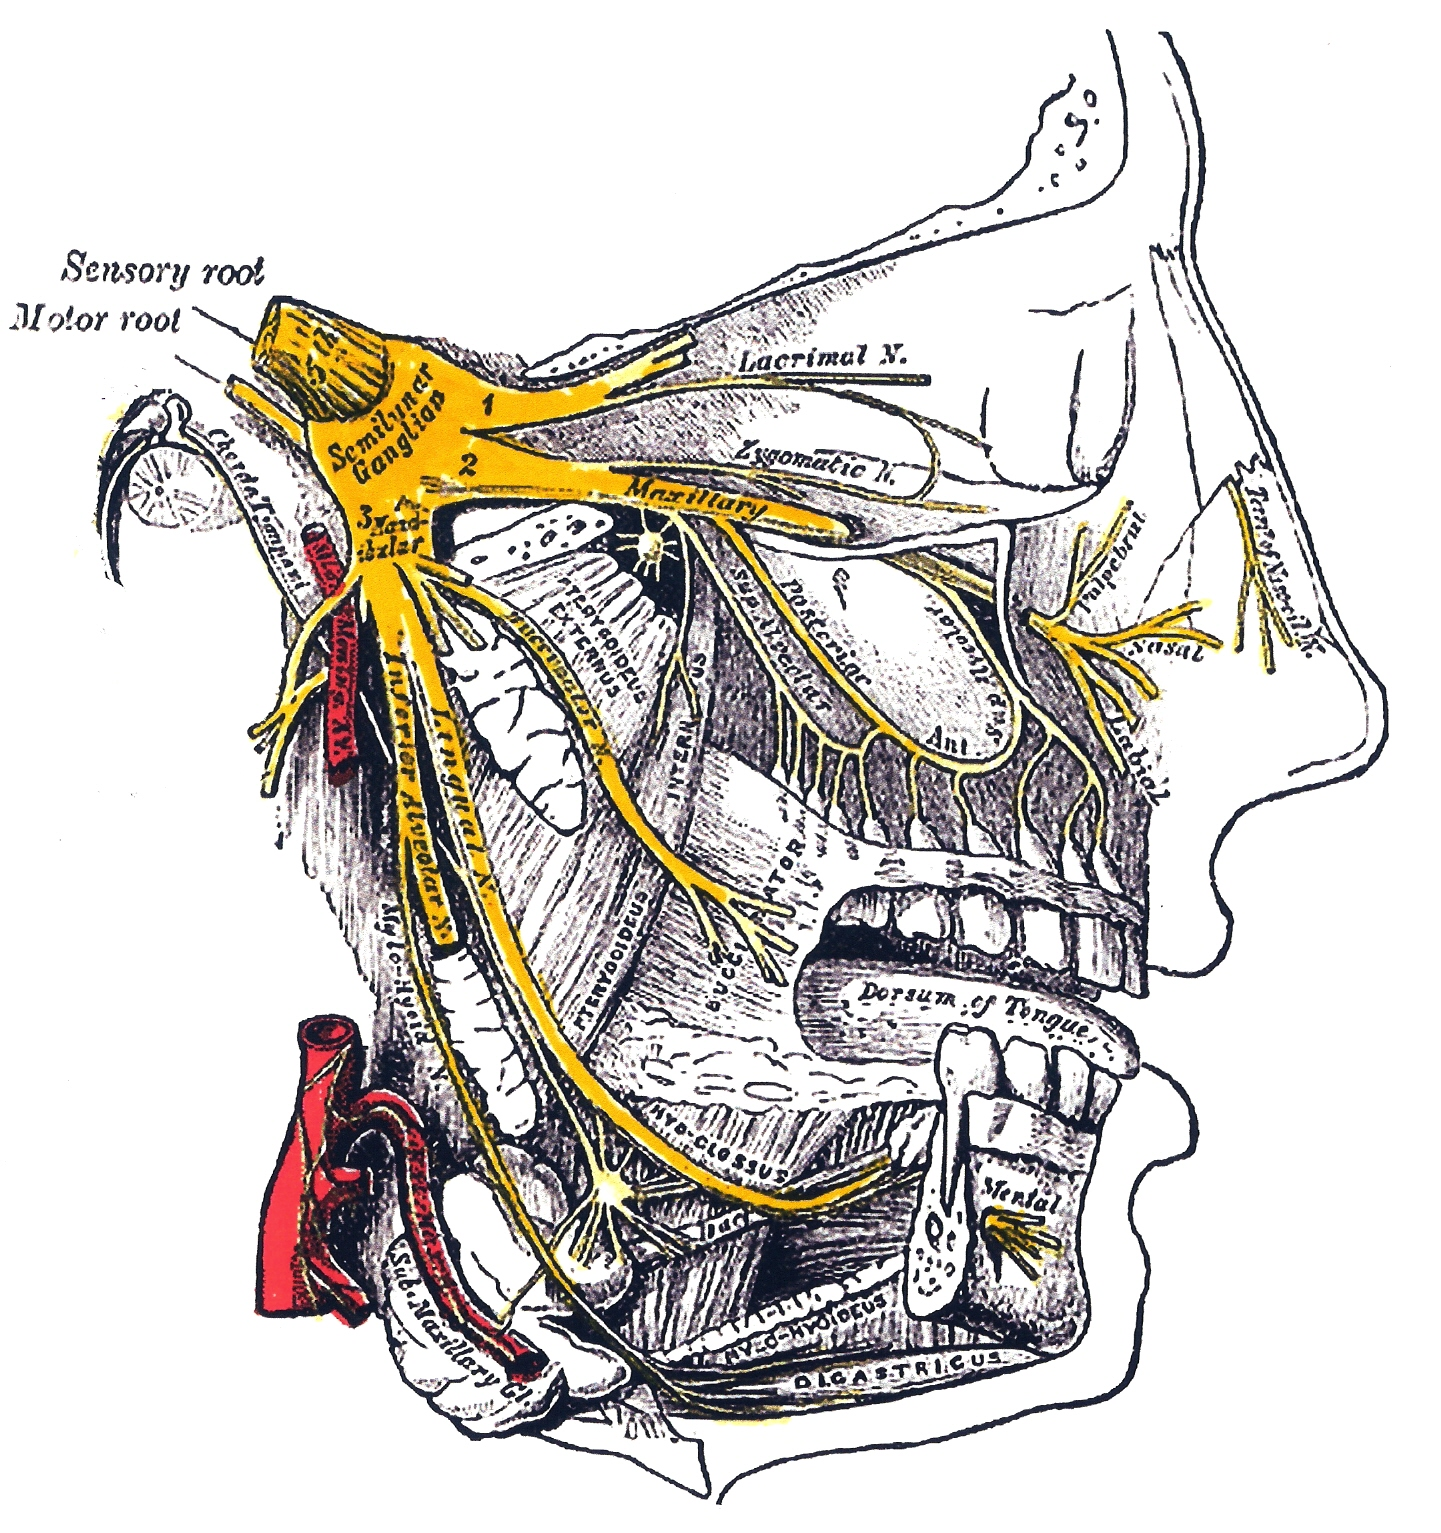 https://upload.wikimedia.org/wikipedia/commons/9/99/Gray778_Trigeminal.png TN